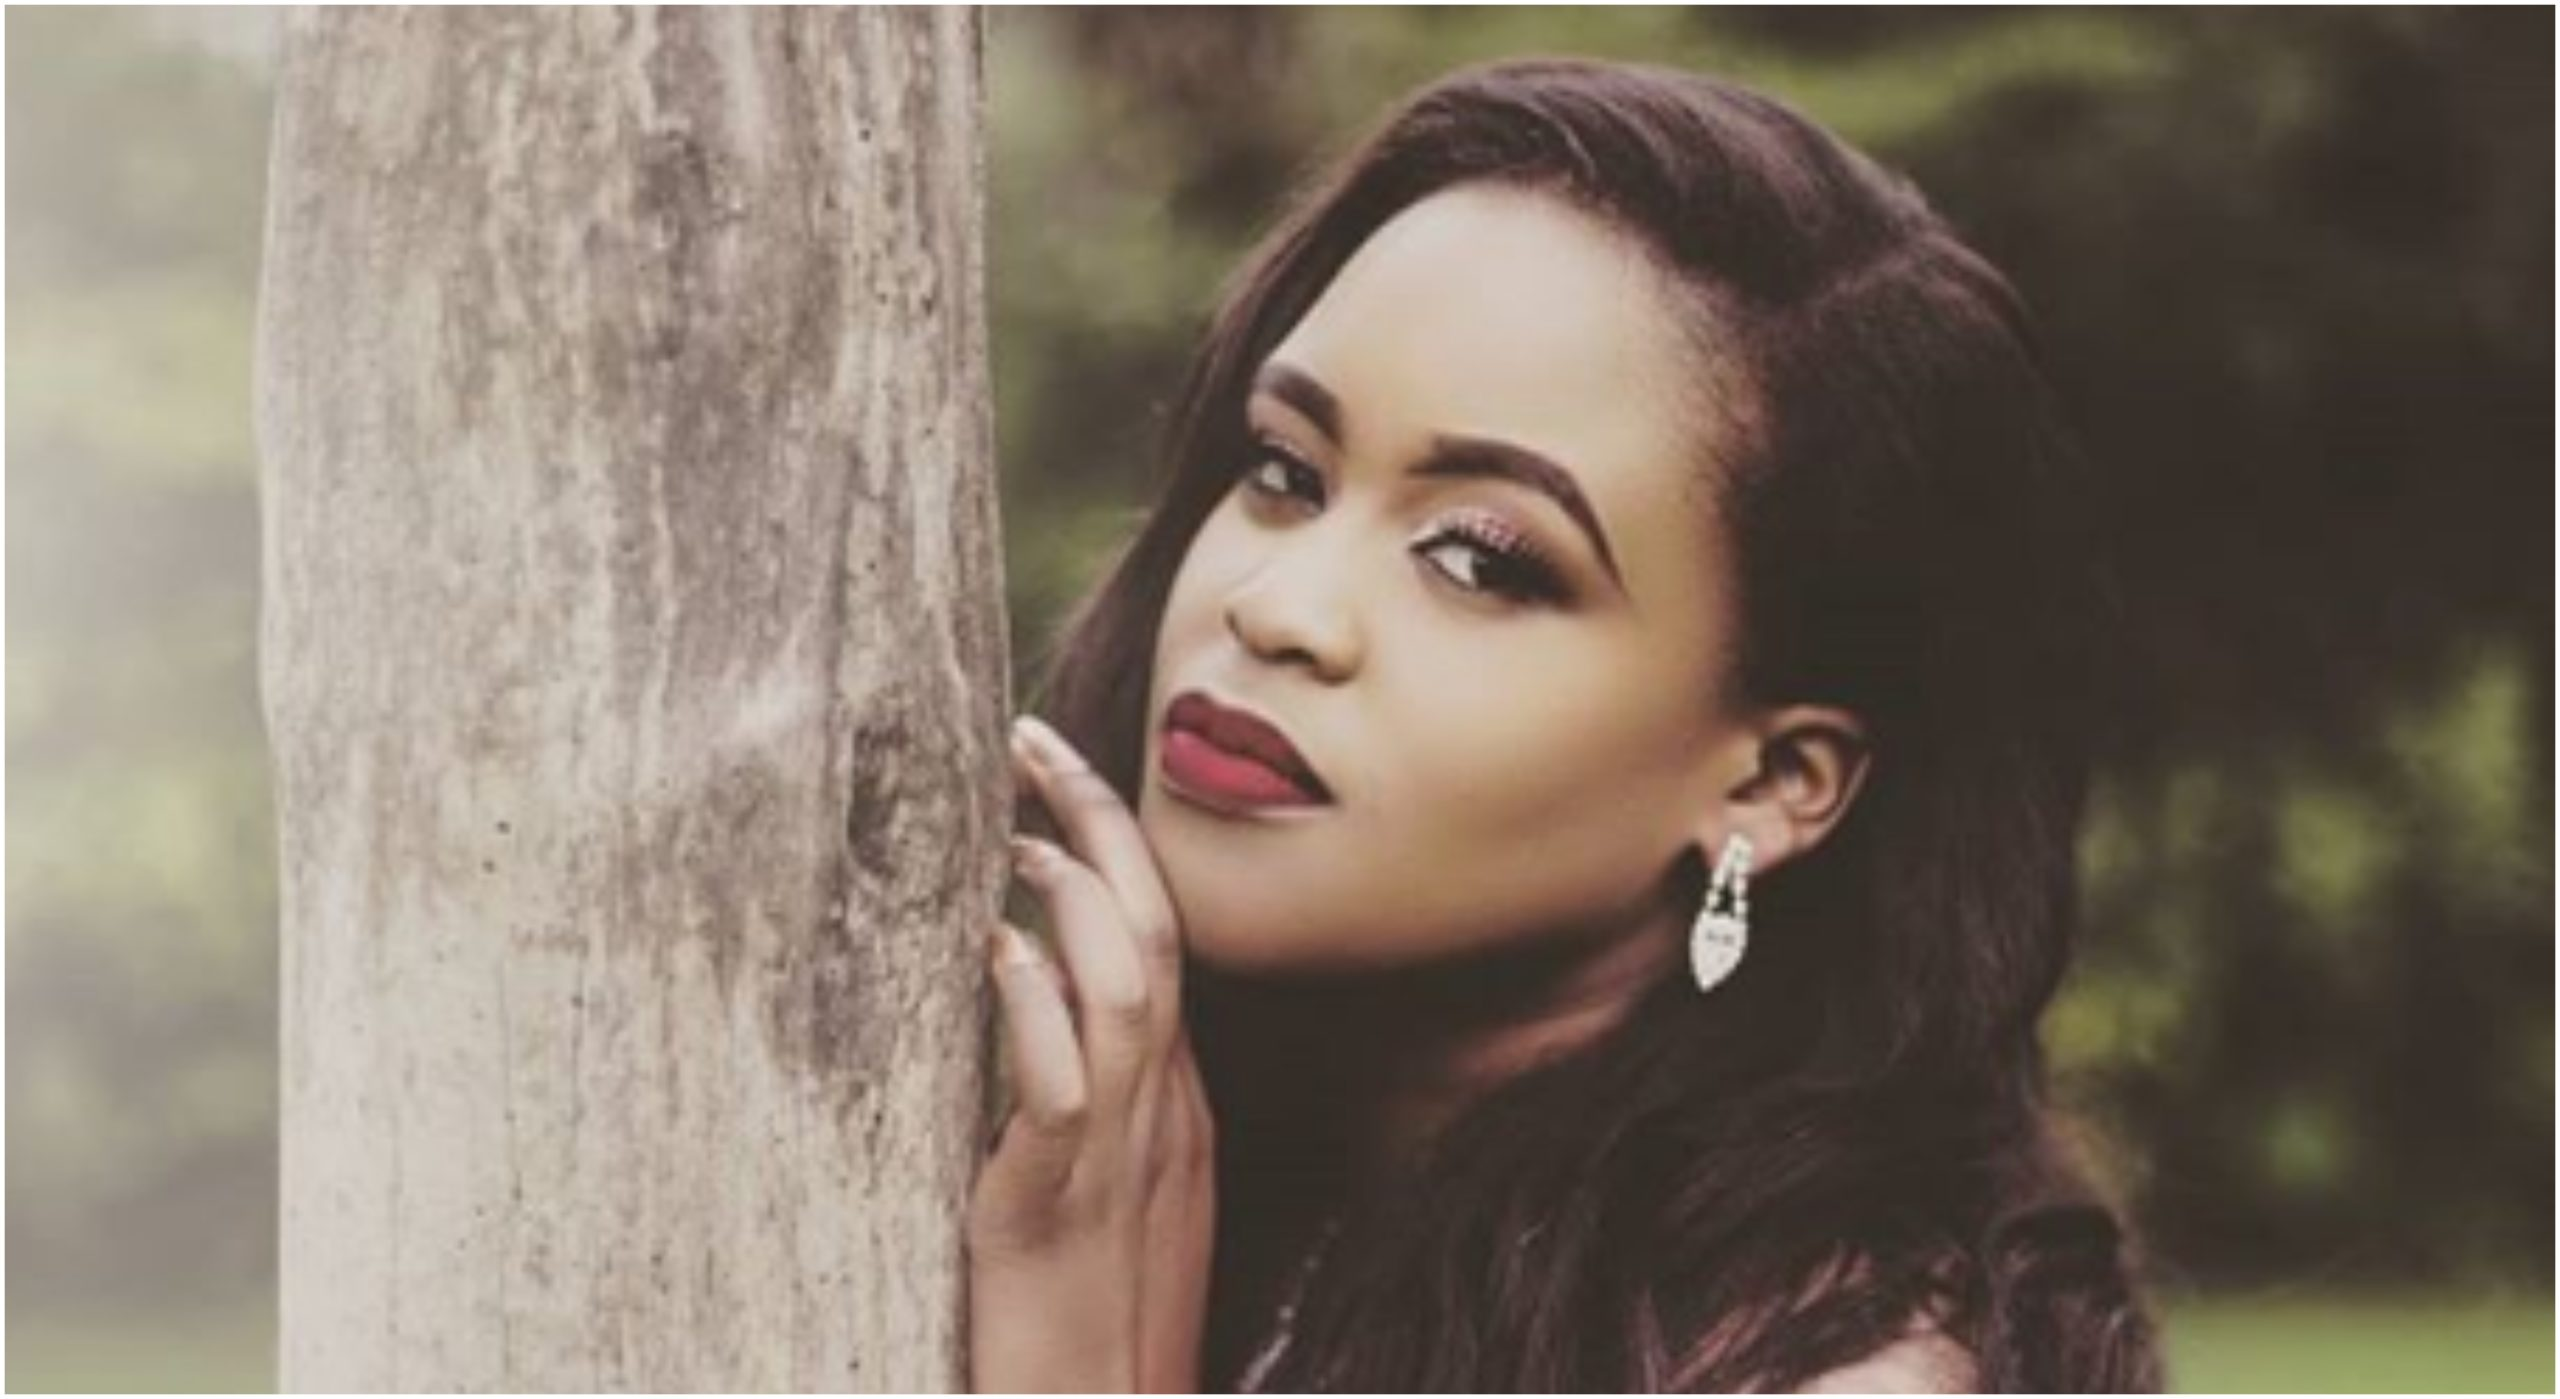 Playstation 5: Kamene Goro giving relationship advice is actually laughable